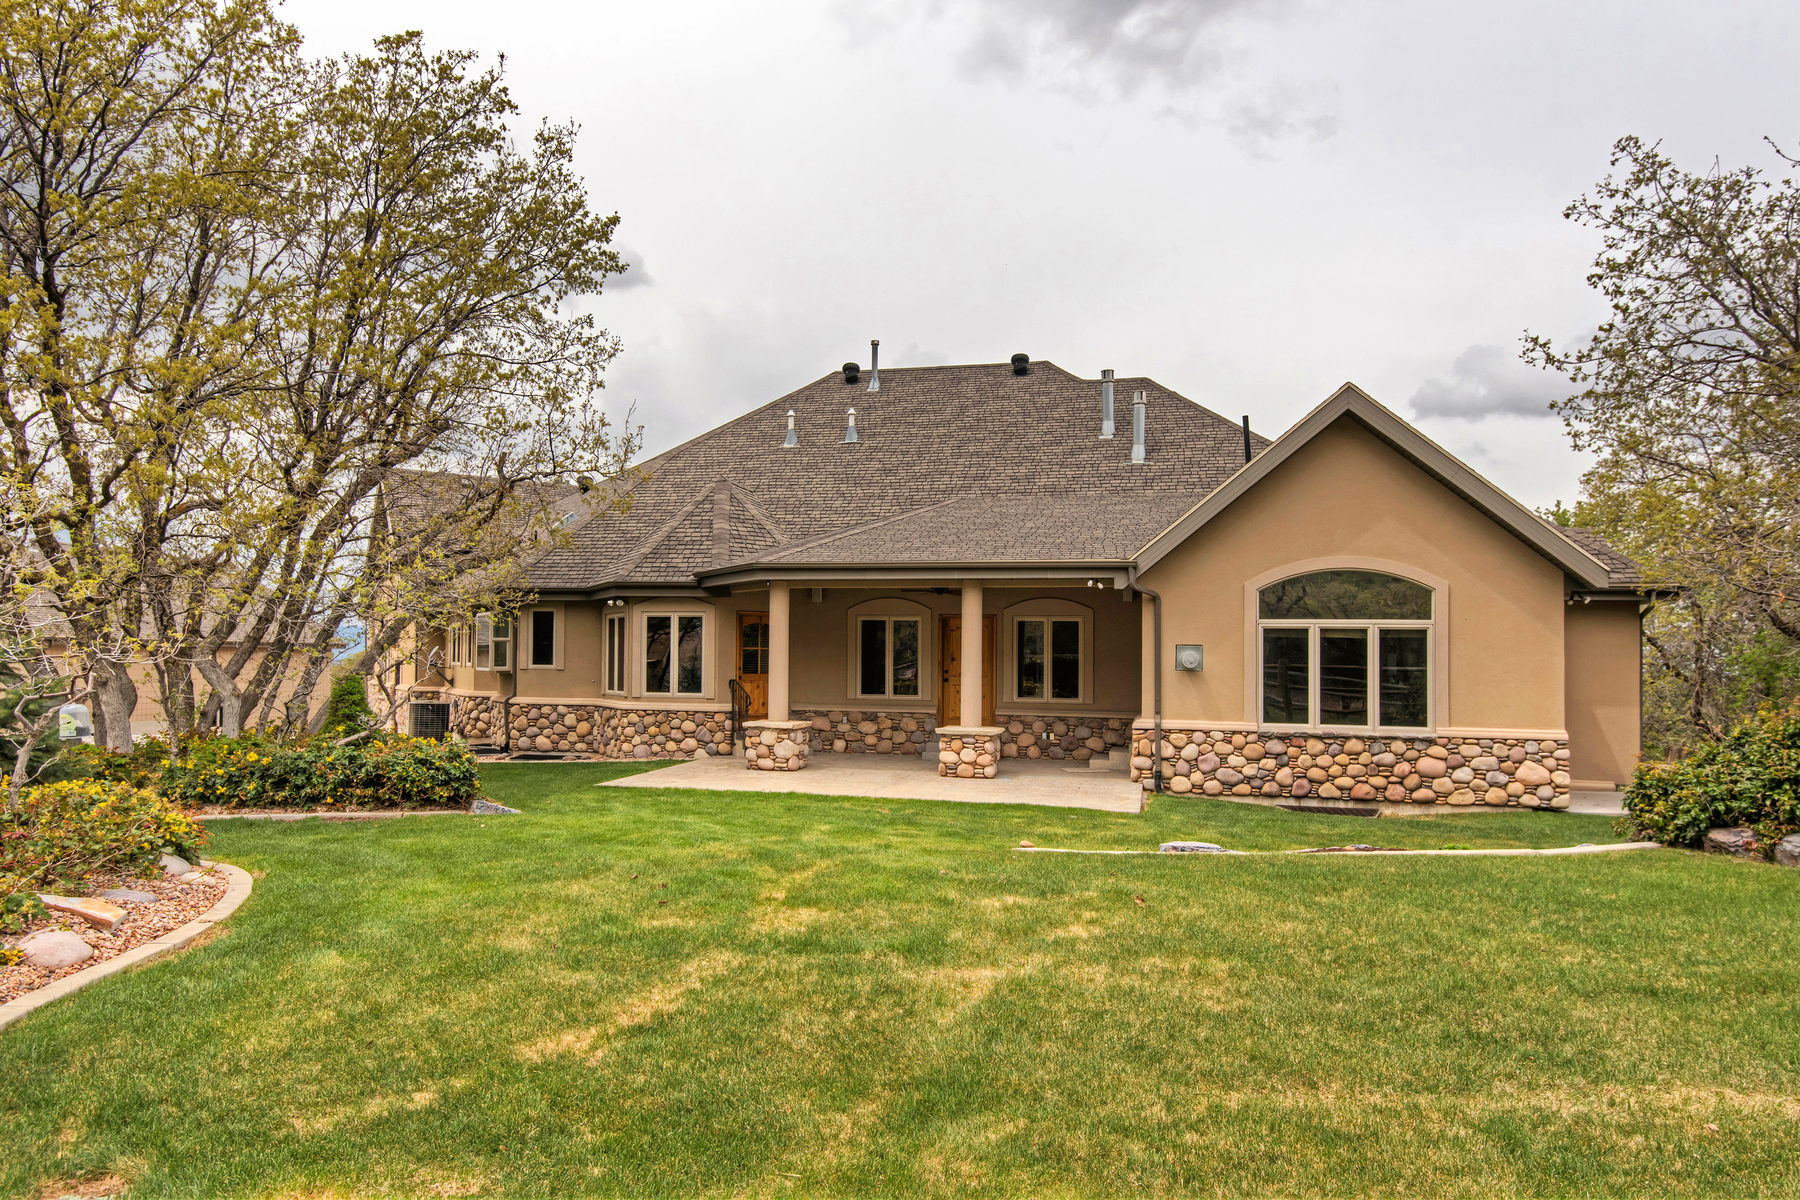 Casa Unifamiliar por un Venta en Horse Property with a Beautiful Home in Mapleton 115 S Aspen Dr Mapleton, Utah 84664 Estados Unidos